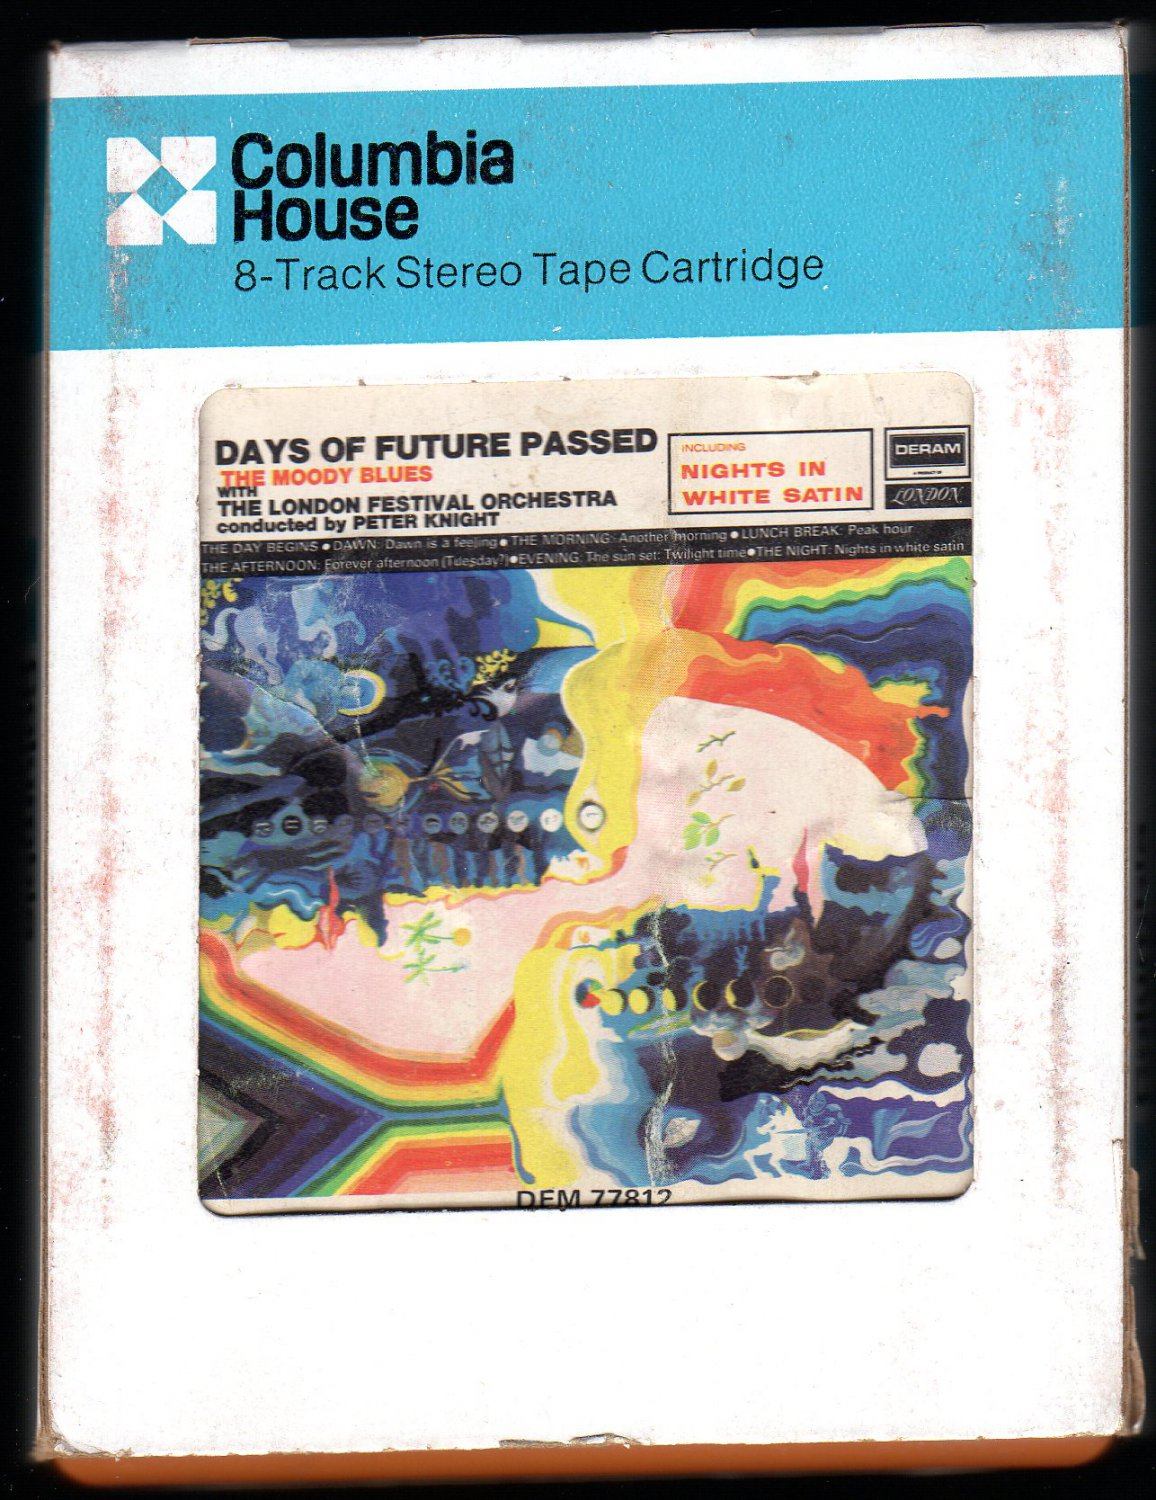 The Moody Blues - Days Of Future Passed 1967 CRC DERAM A29B 8-TRACK TAPE